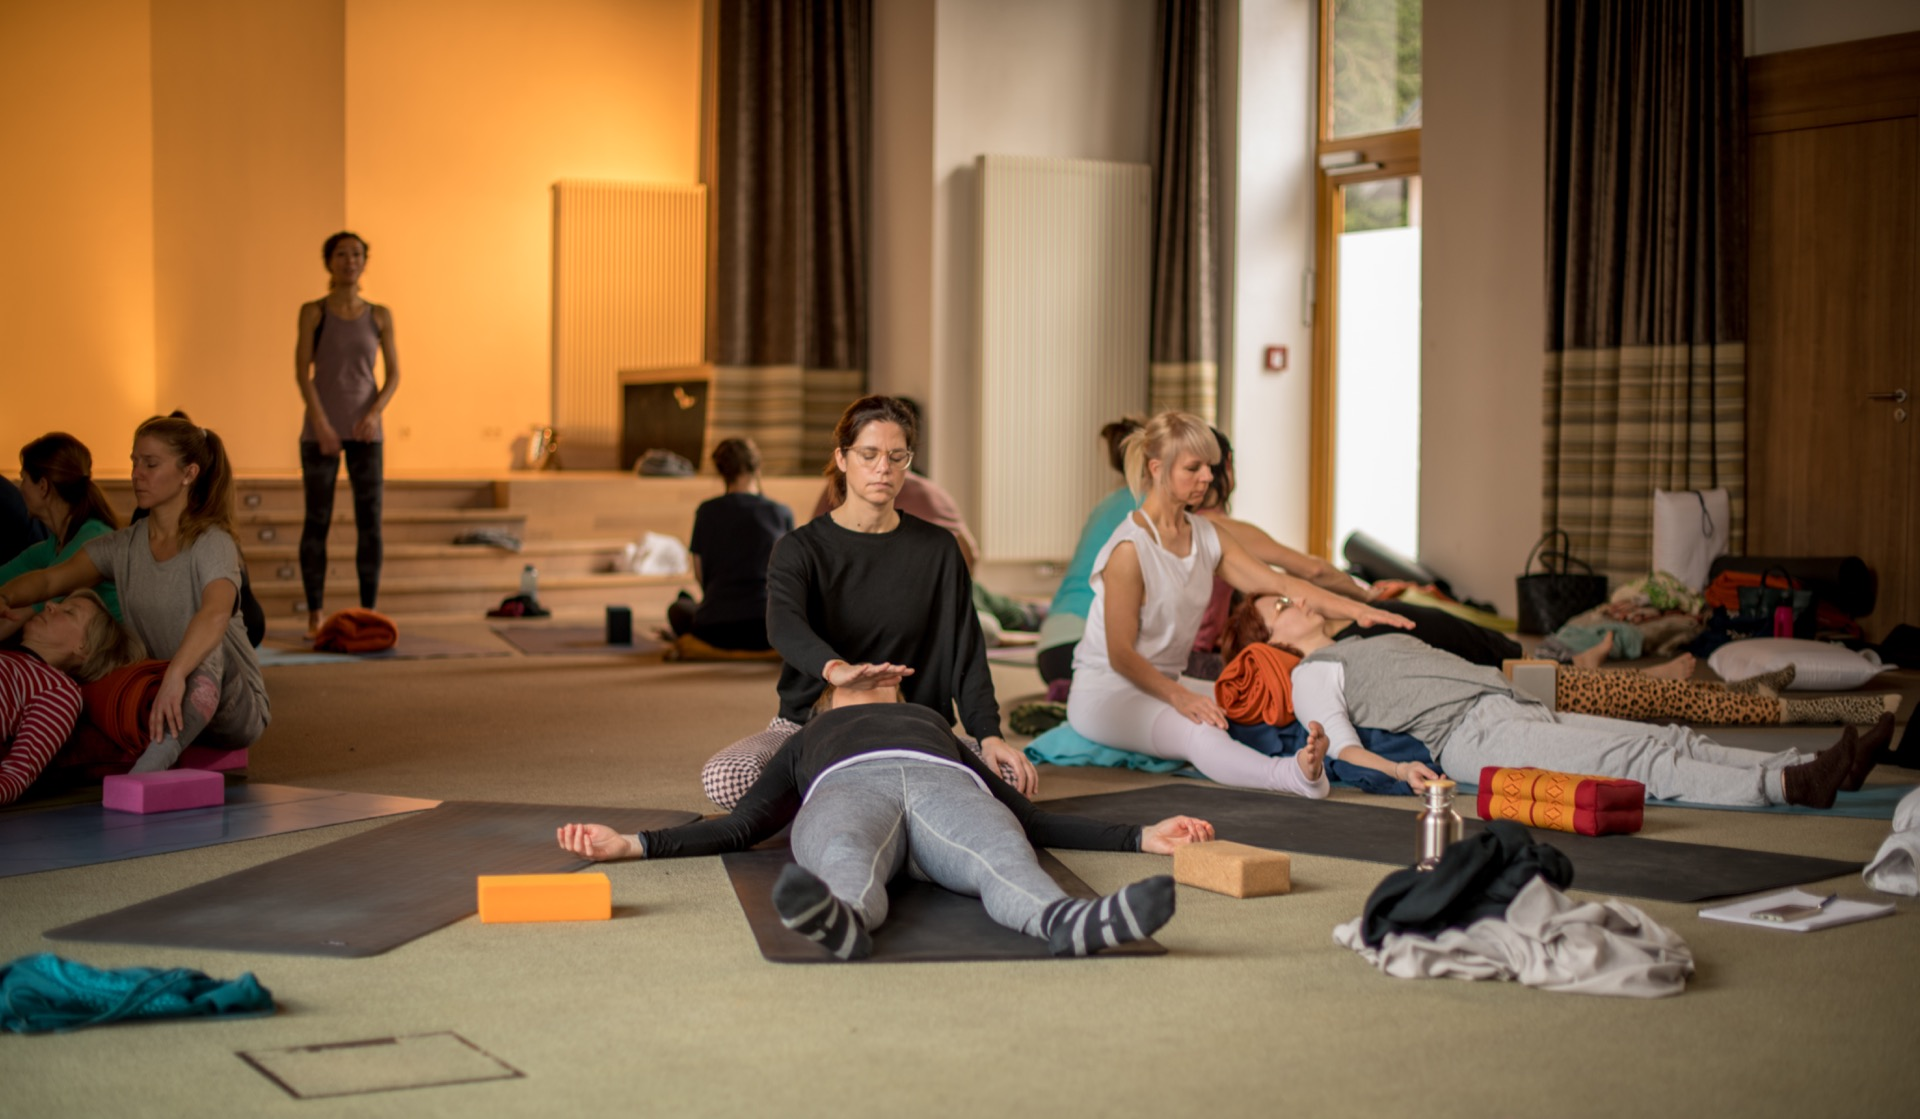 A-New-Beginning-Hie-Kim-Yoga-Retreat-Alina-Matis-Photography-022 - Hie Kim Yoga - Yoga Retreat - Yoga Workshops und Reisen